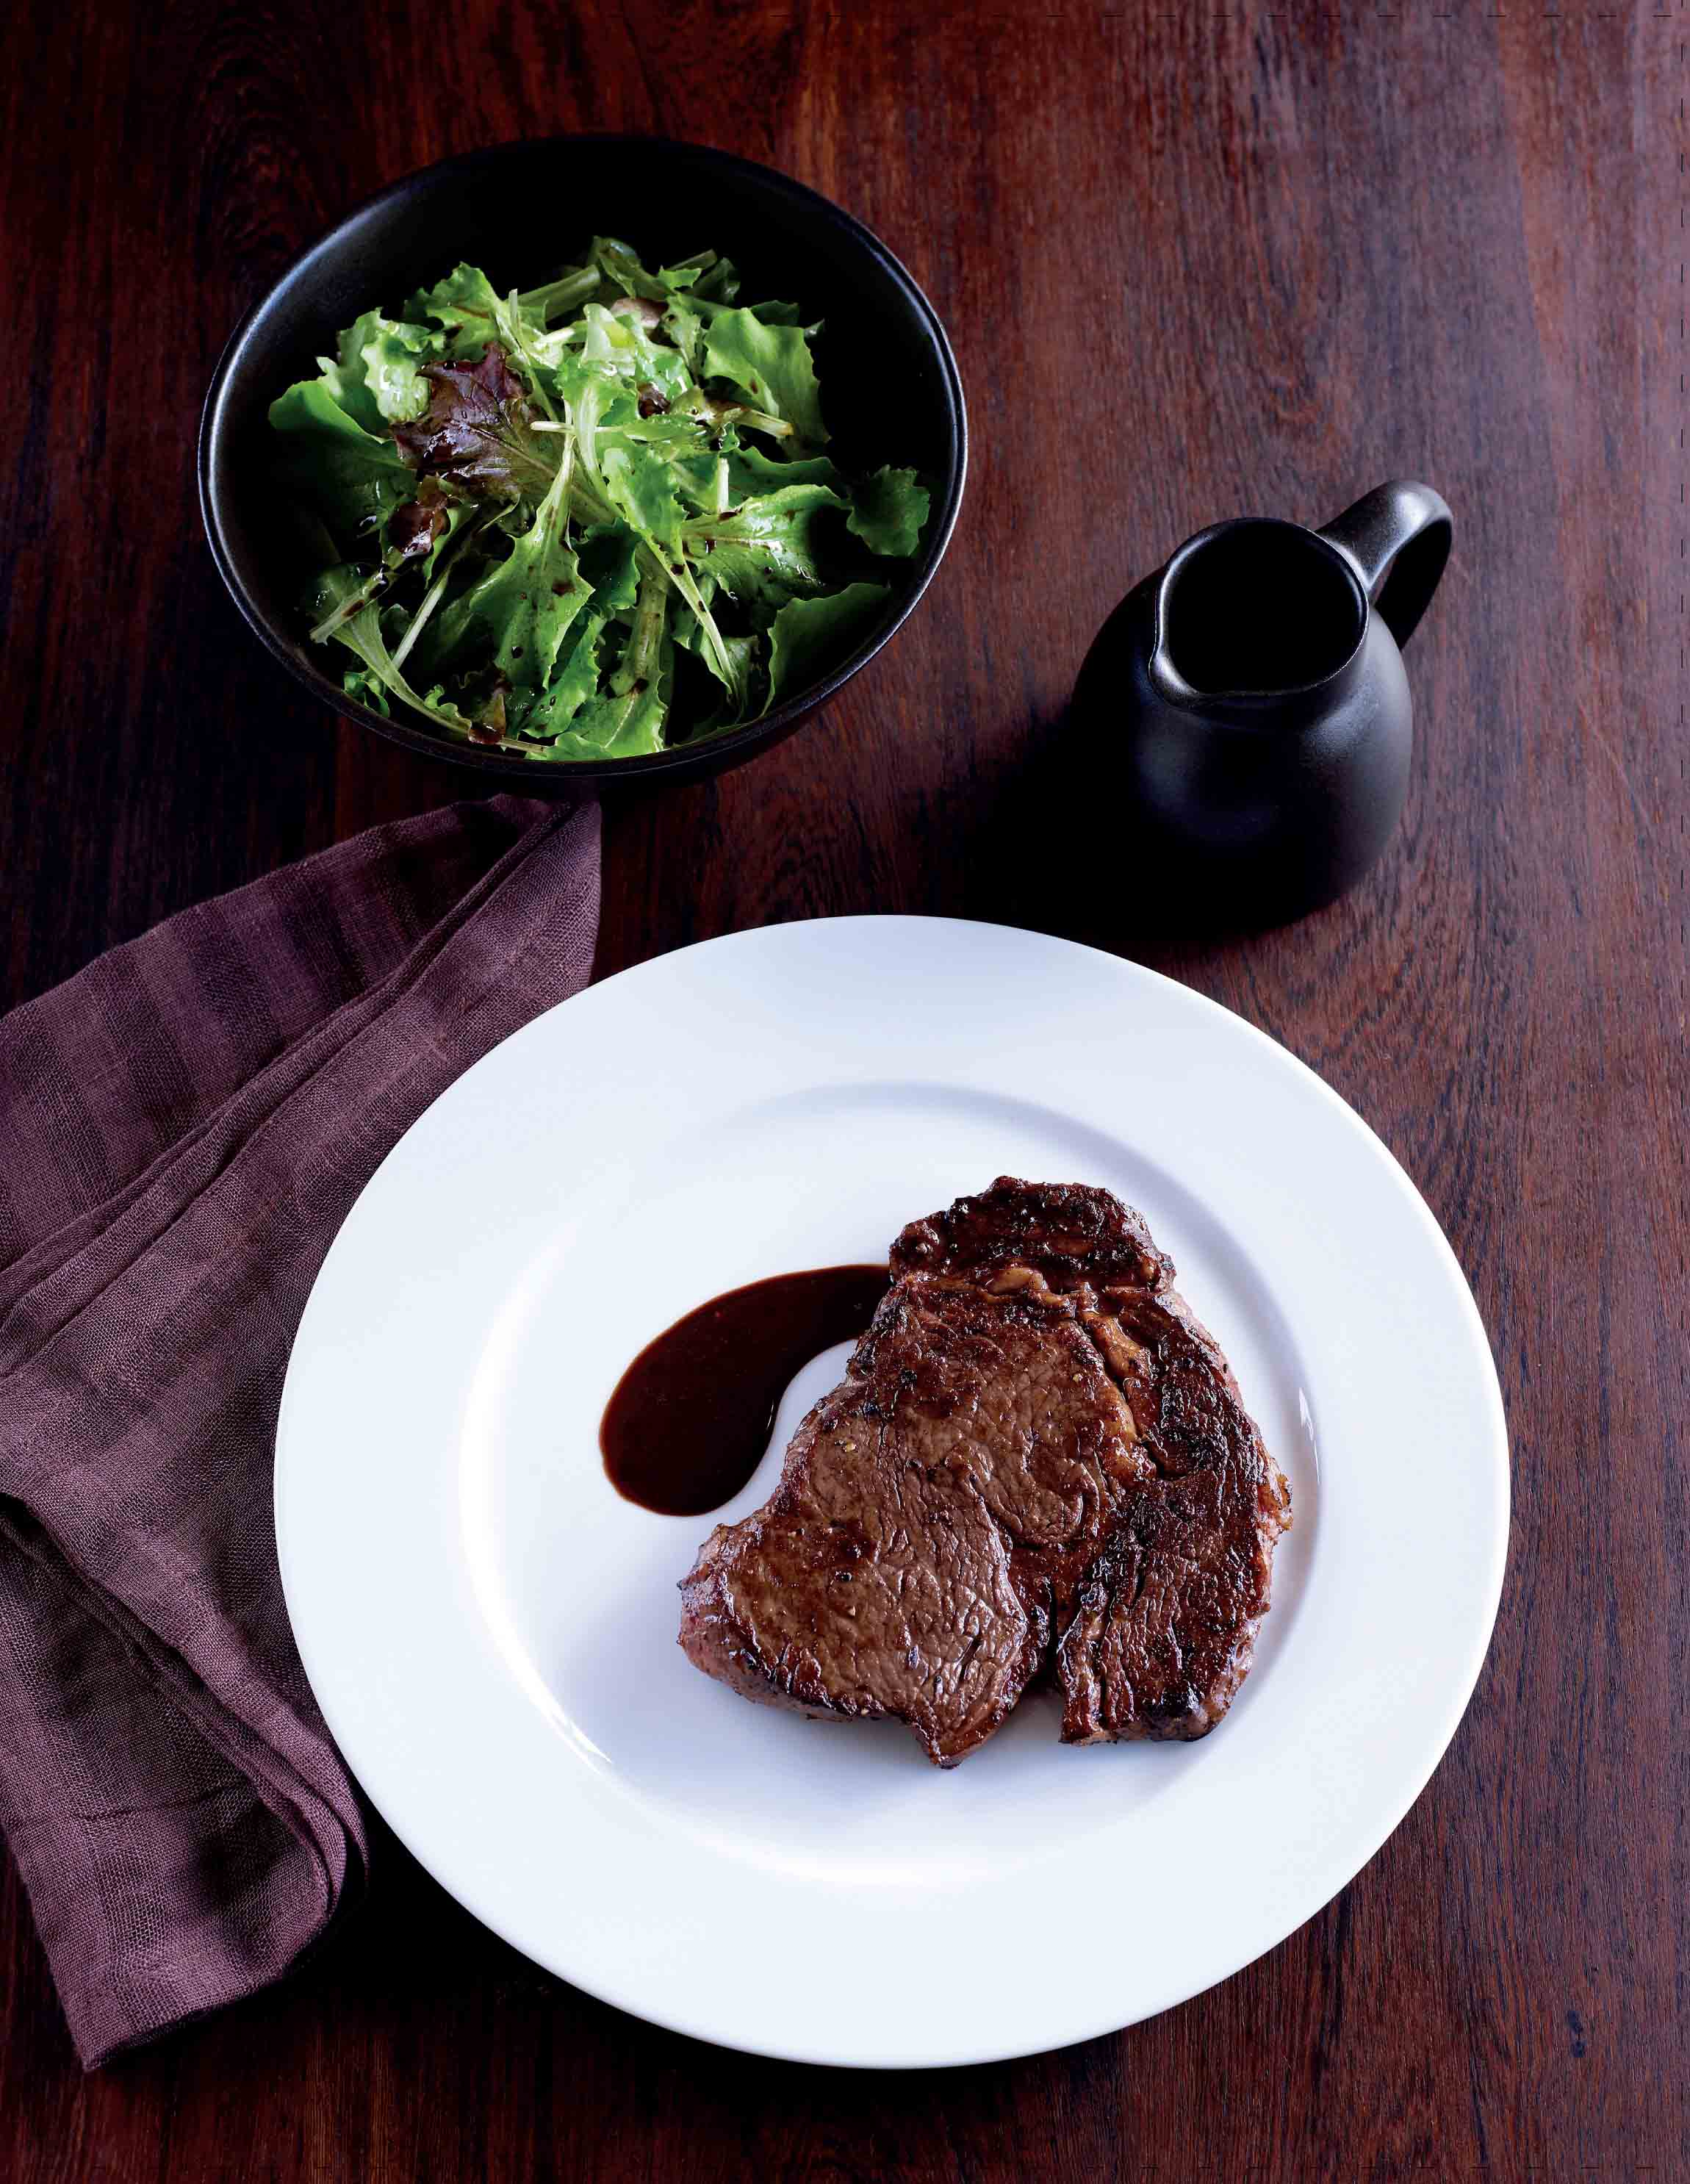 Steak with a red wine sauce